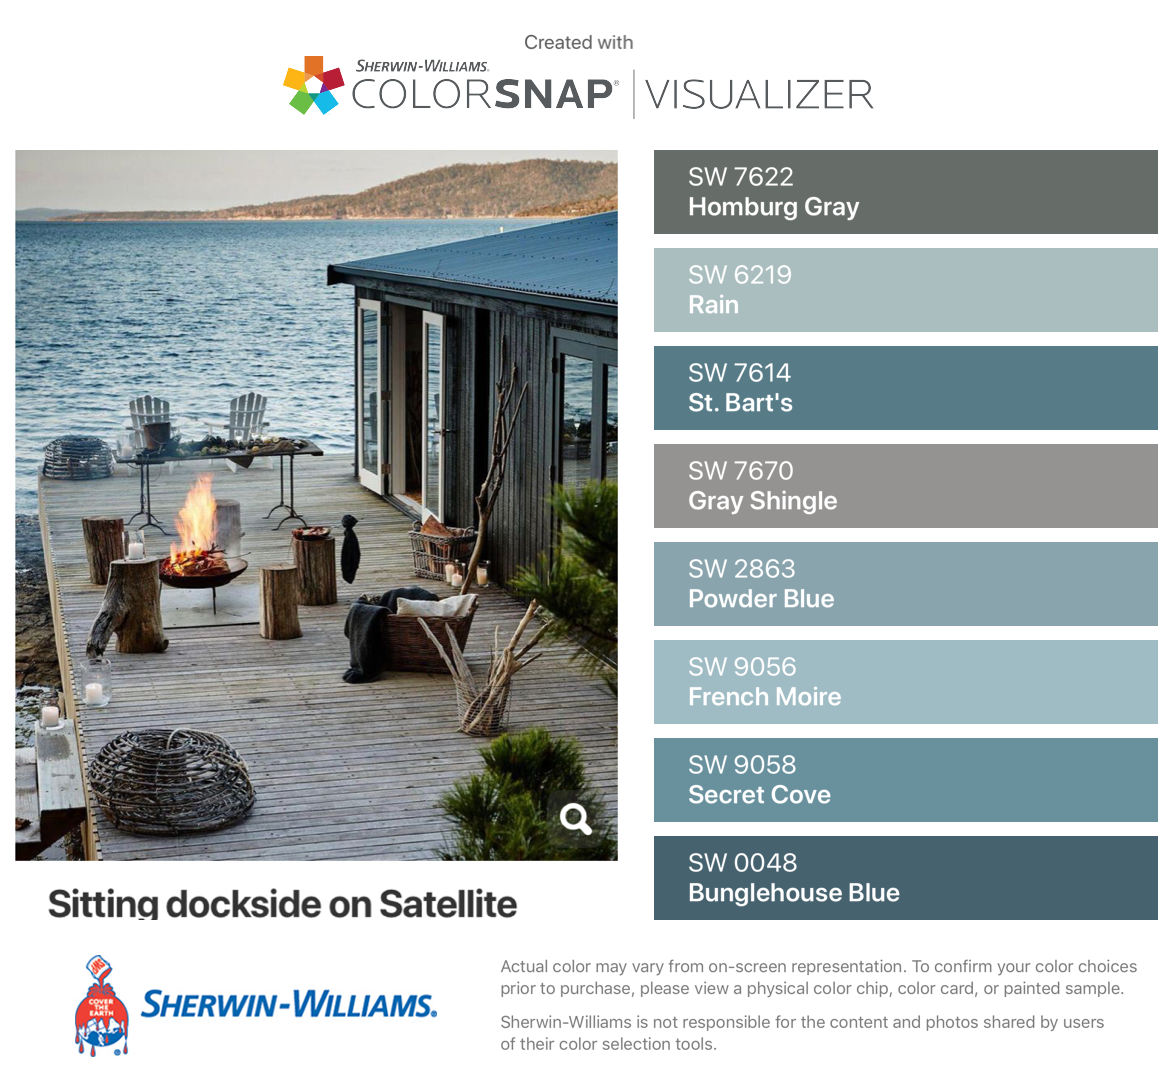 I Found These Colors With Colorsnap Visualizer For Iphone By Sherwin Williams Homburg Gray Sw Cream Colored Houses Paint Colors For Home Blue Color Schemes